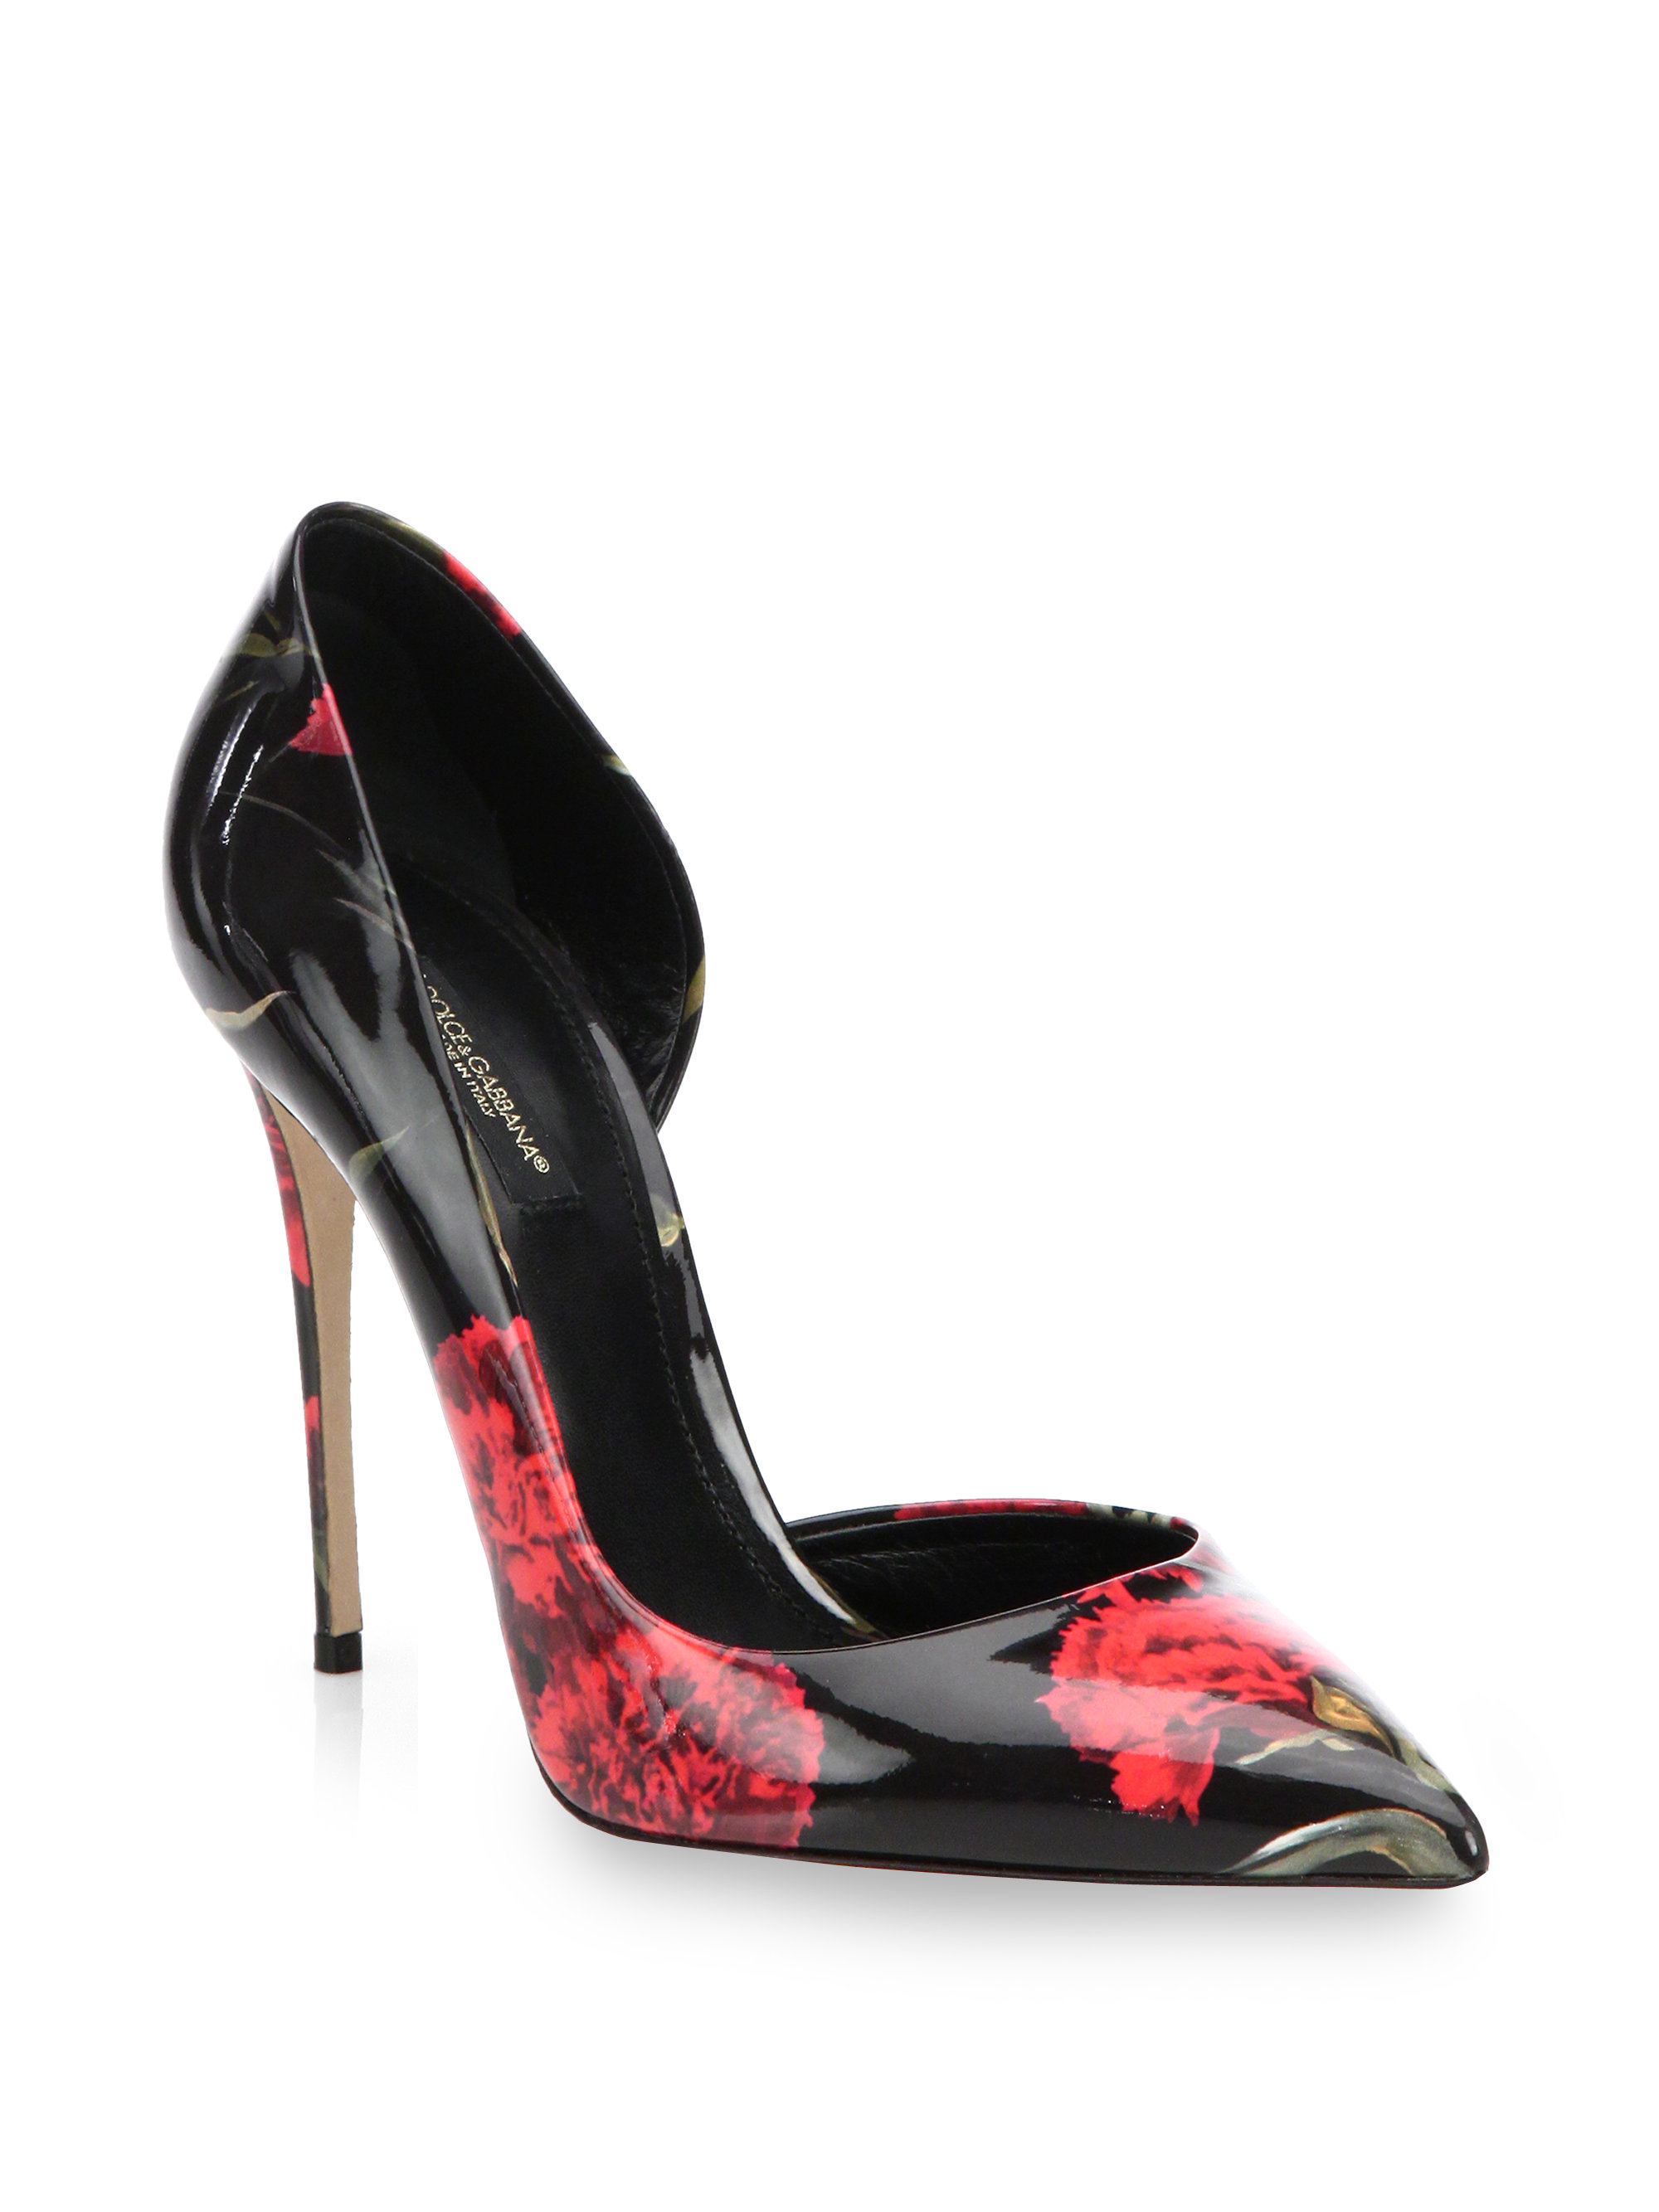 Dolce & Gabbana Patent Leather d'Orsay Pumps outlet 2014 unisex low shipping sale online Ho3MfOHv